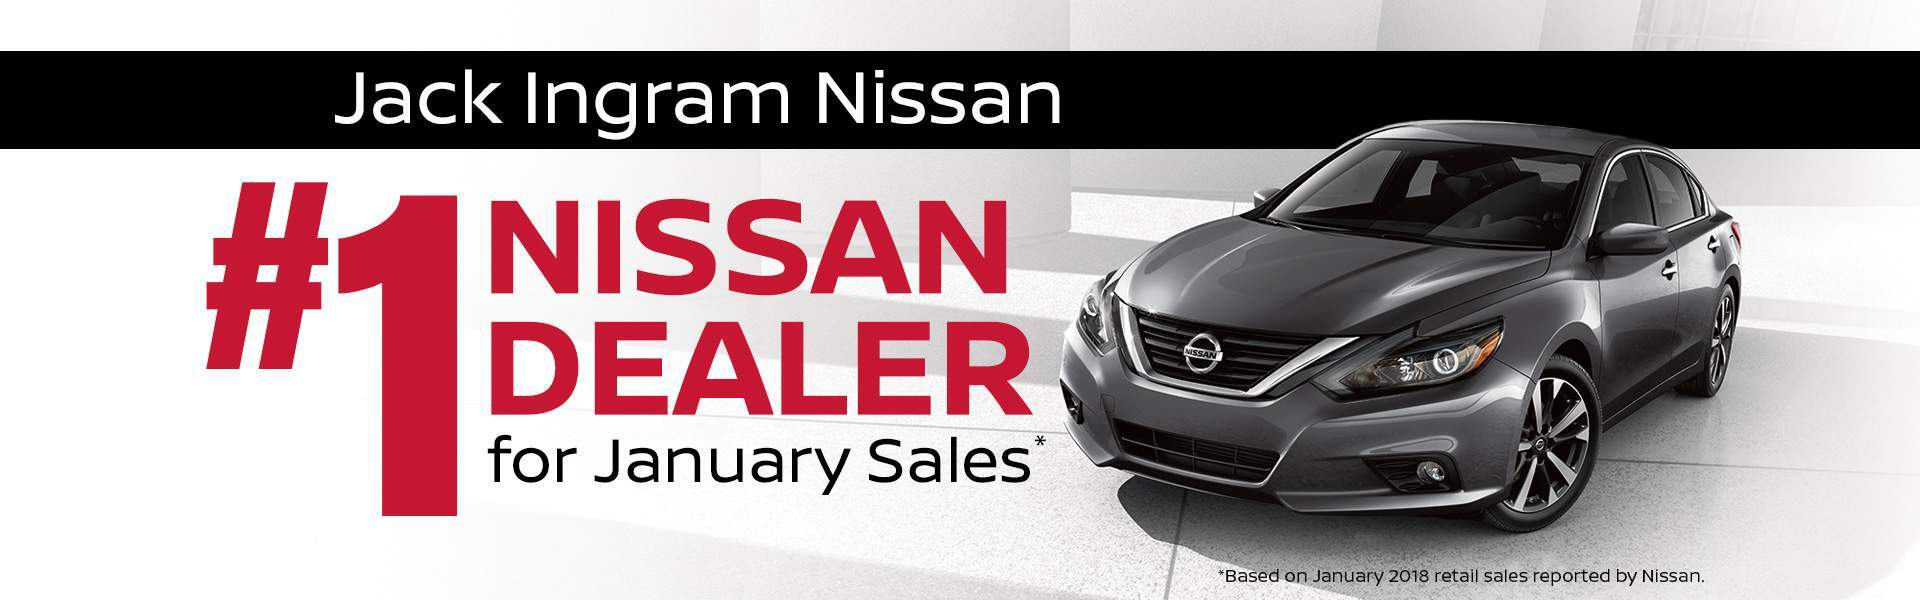 Leasing Nissan Altima further Audi Mercedes Benz Nissan Porsche Jack Ingram Motors also Lexus Montgomery Al also Nissan In Montgomery Al also New And Used Suvs For Sale In Montgomery Alabama Al. on jack ingram car dealership in montgomery al